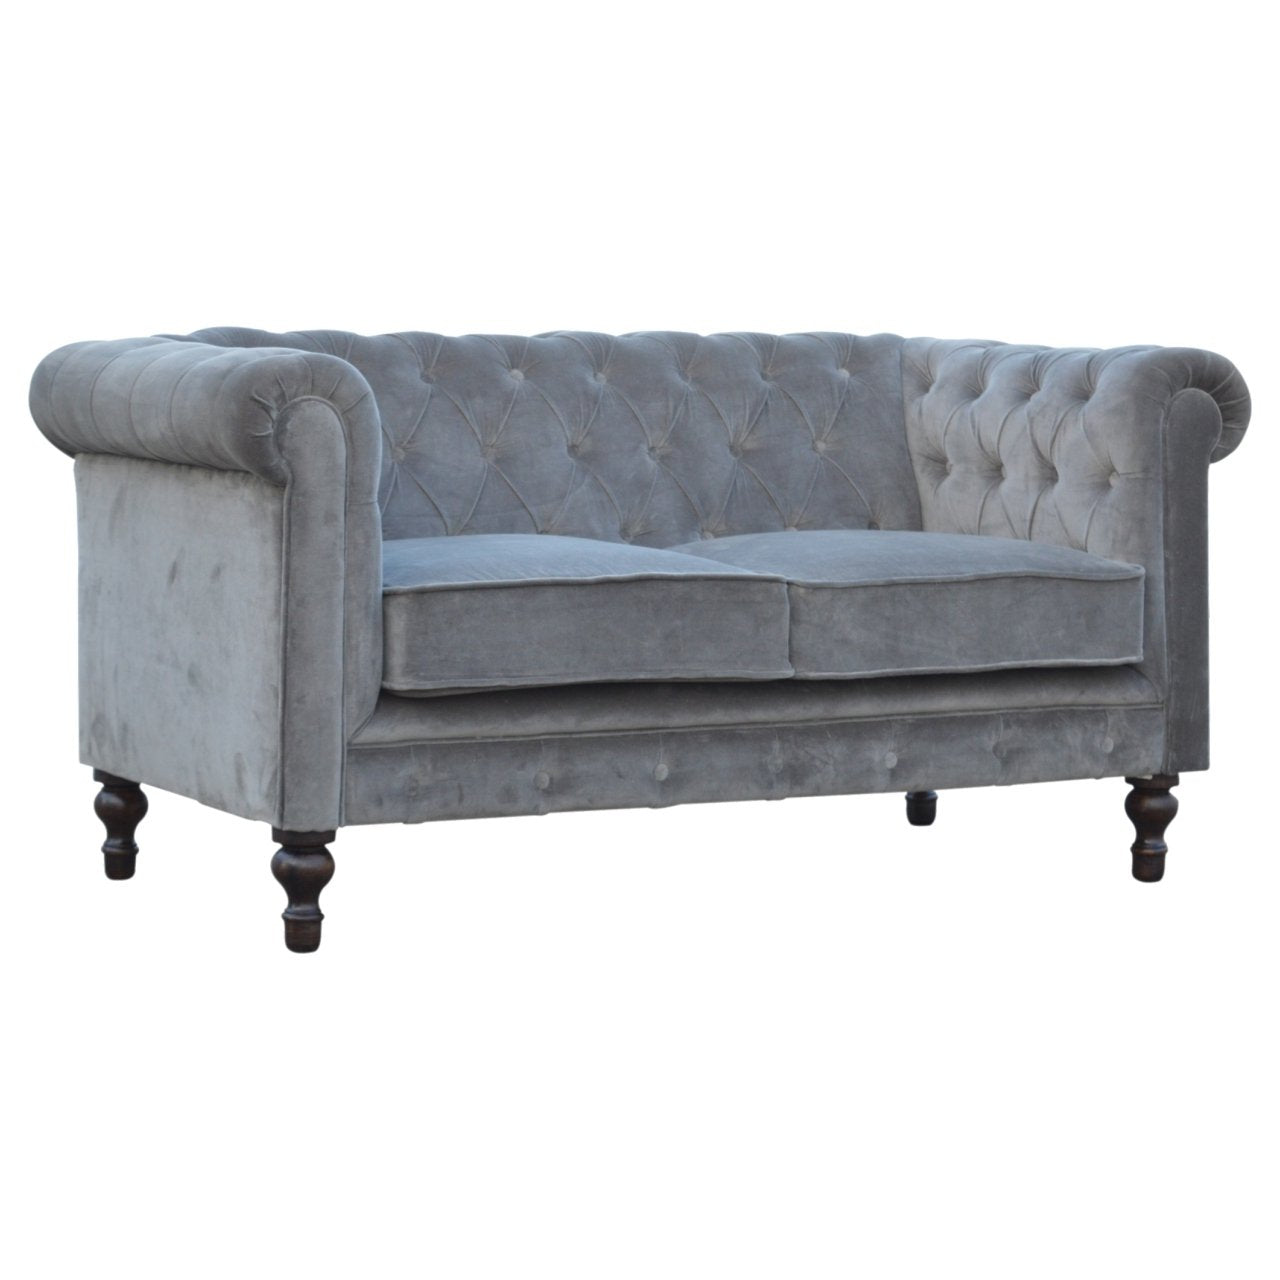 Grey Velvet 2 Seater Chesterfield Sofa